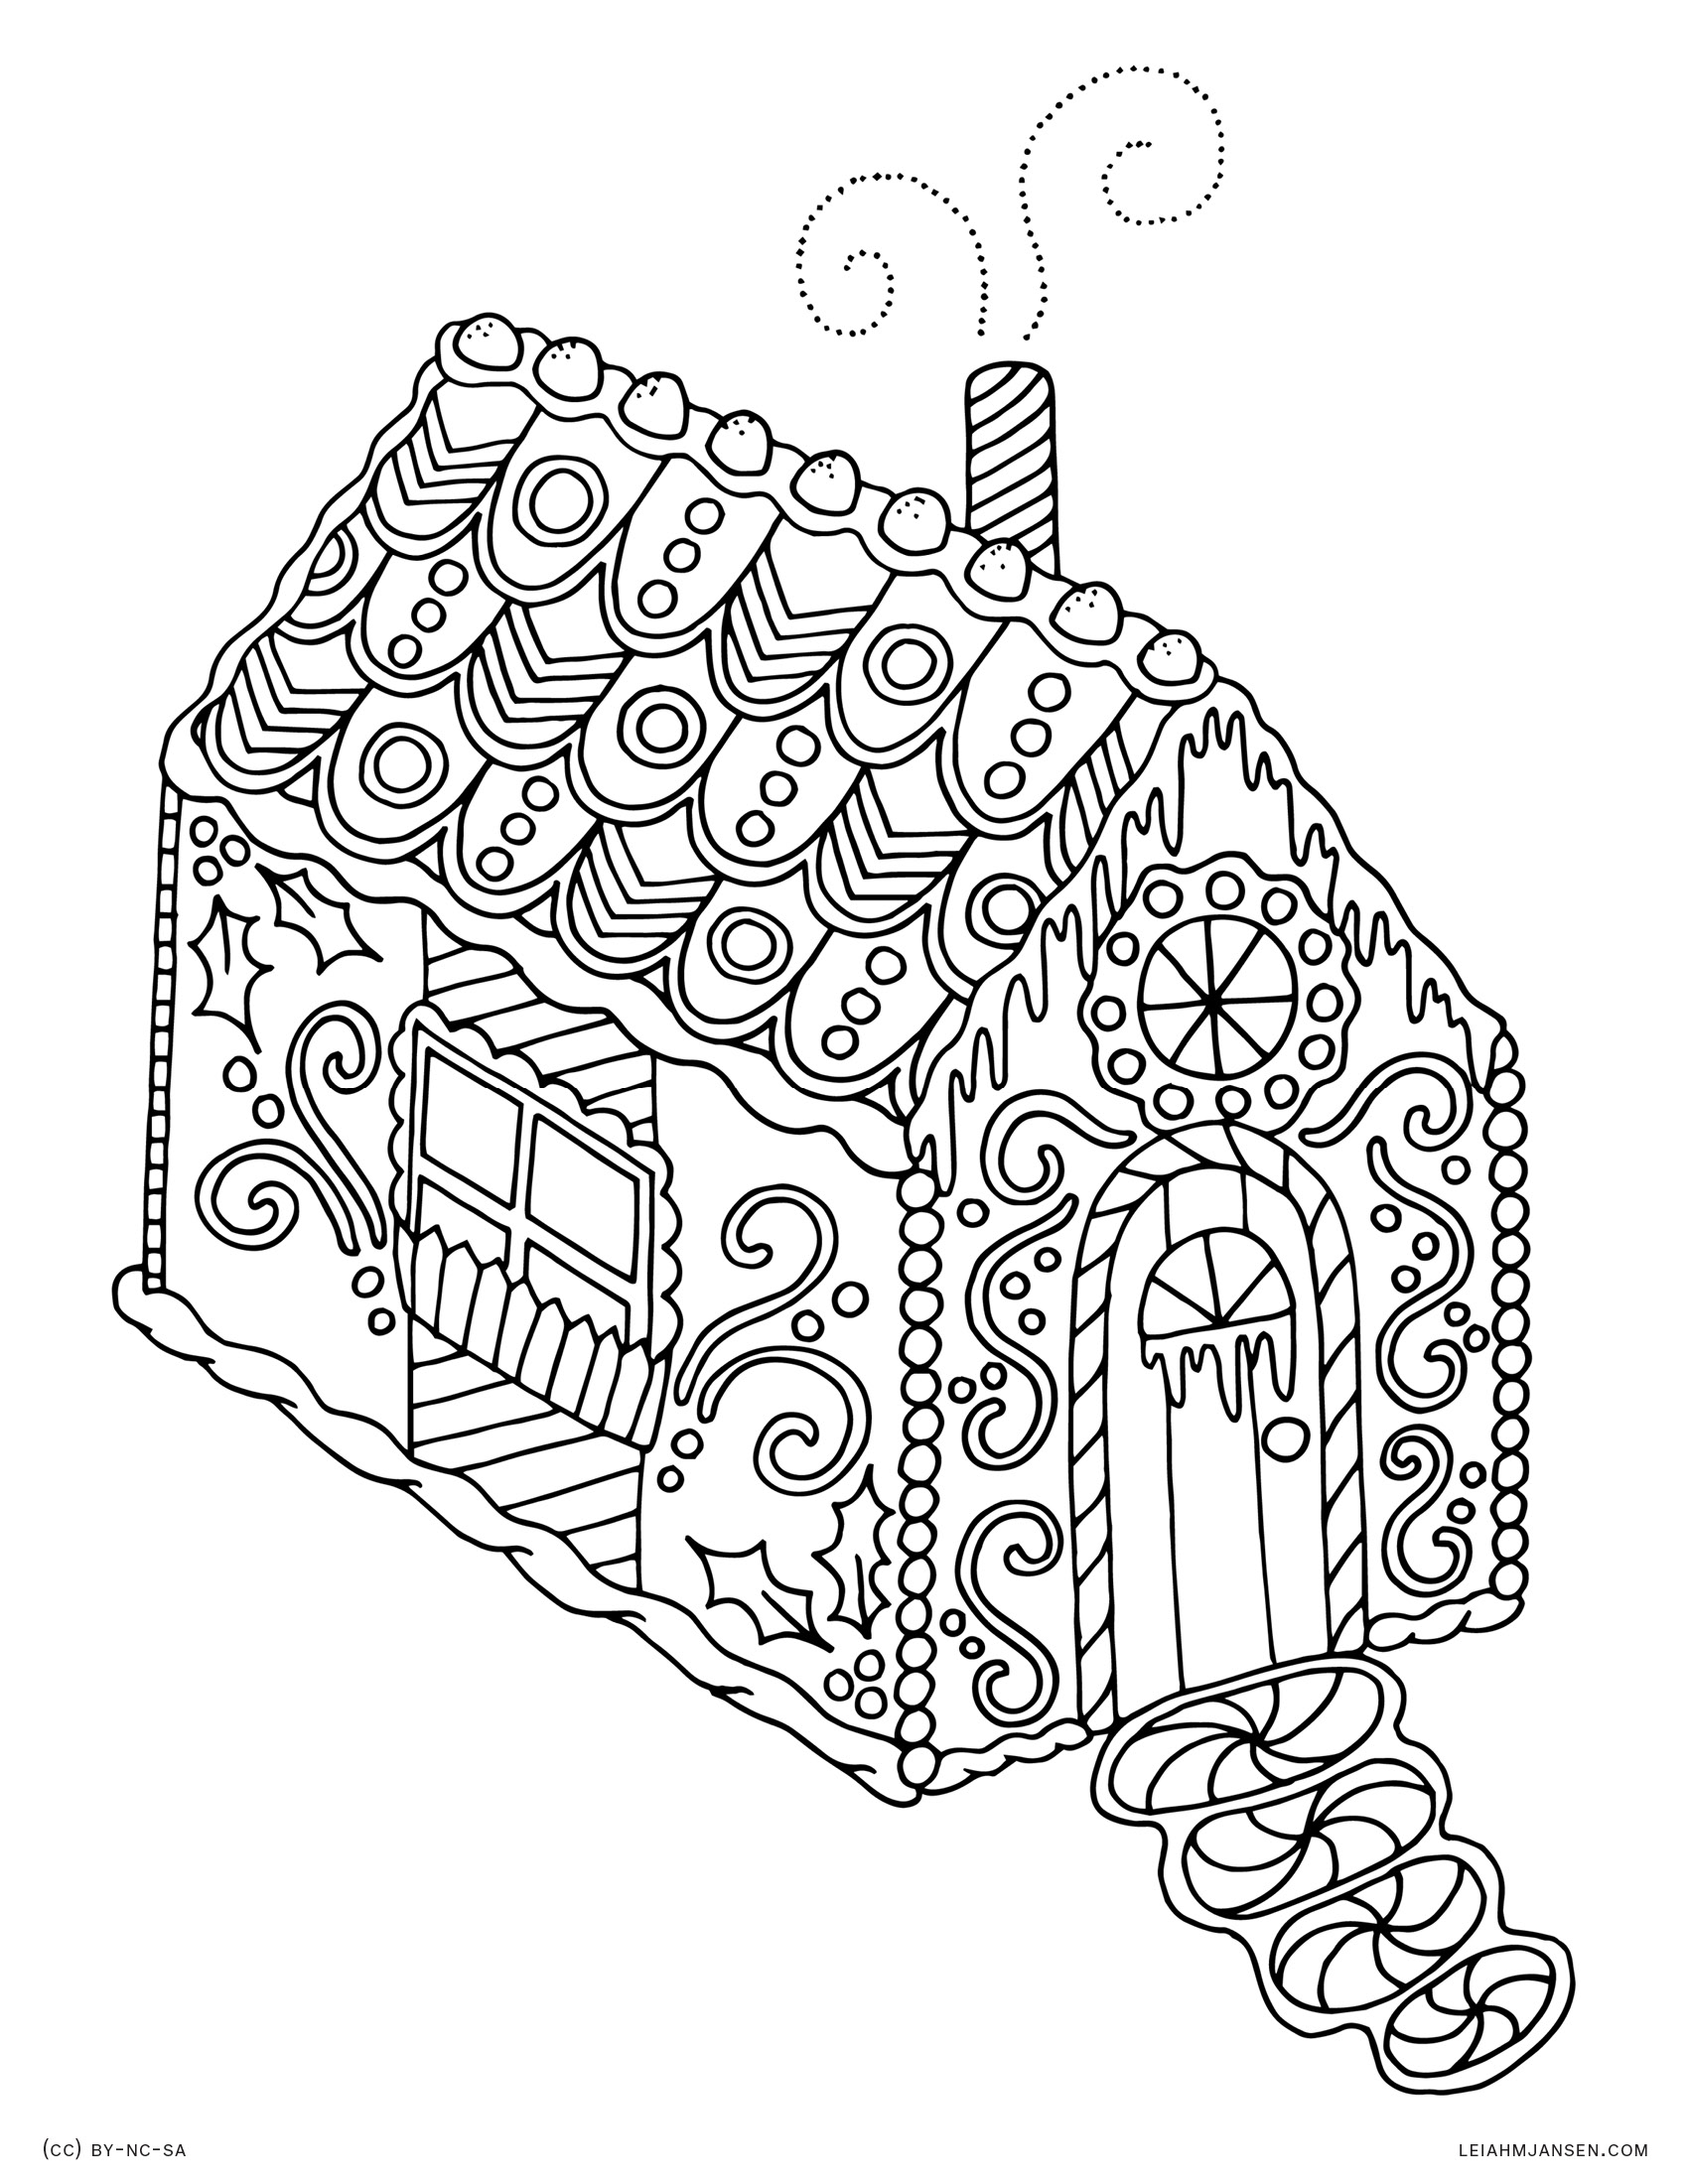 House Interior Coloring Pages At Getdrawings Com Free For Personal